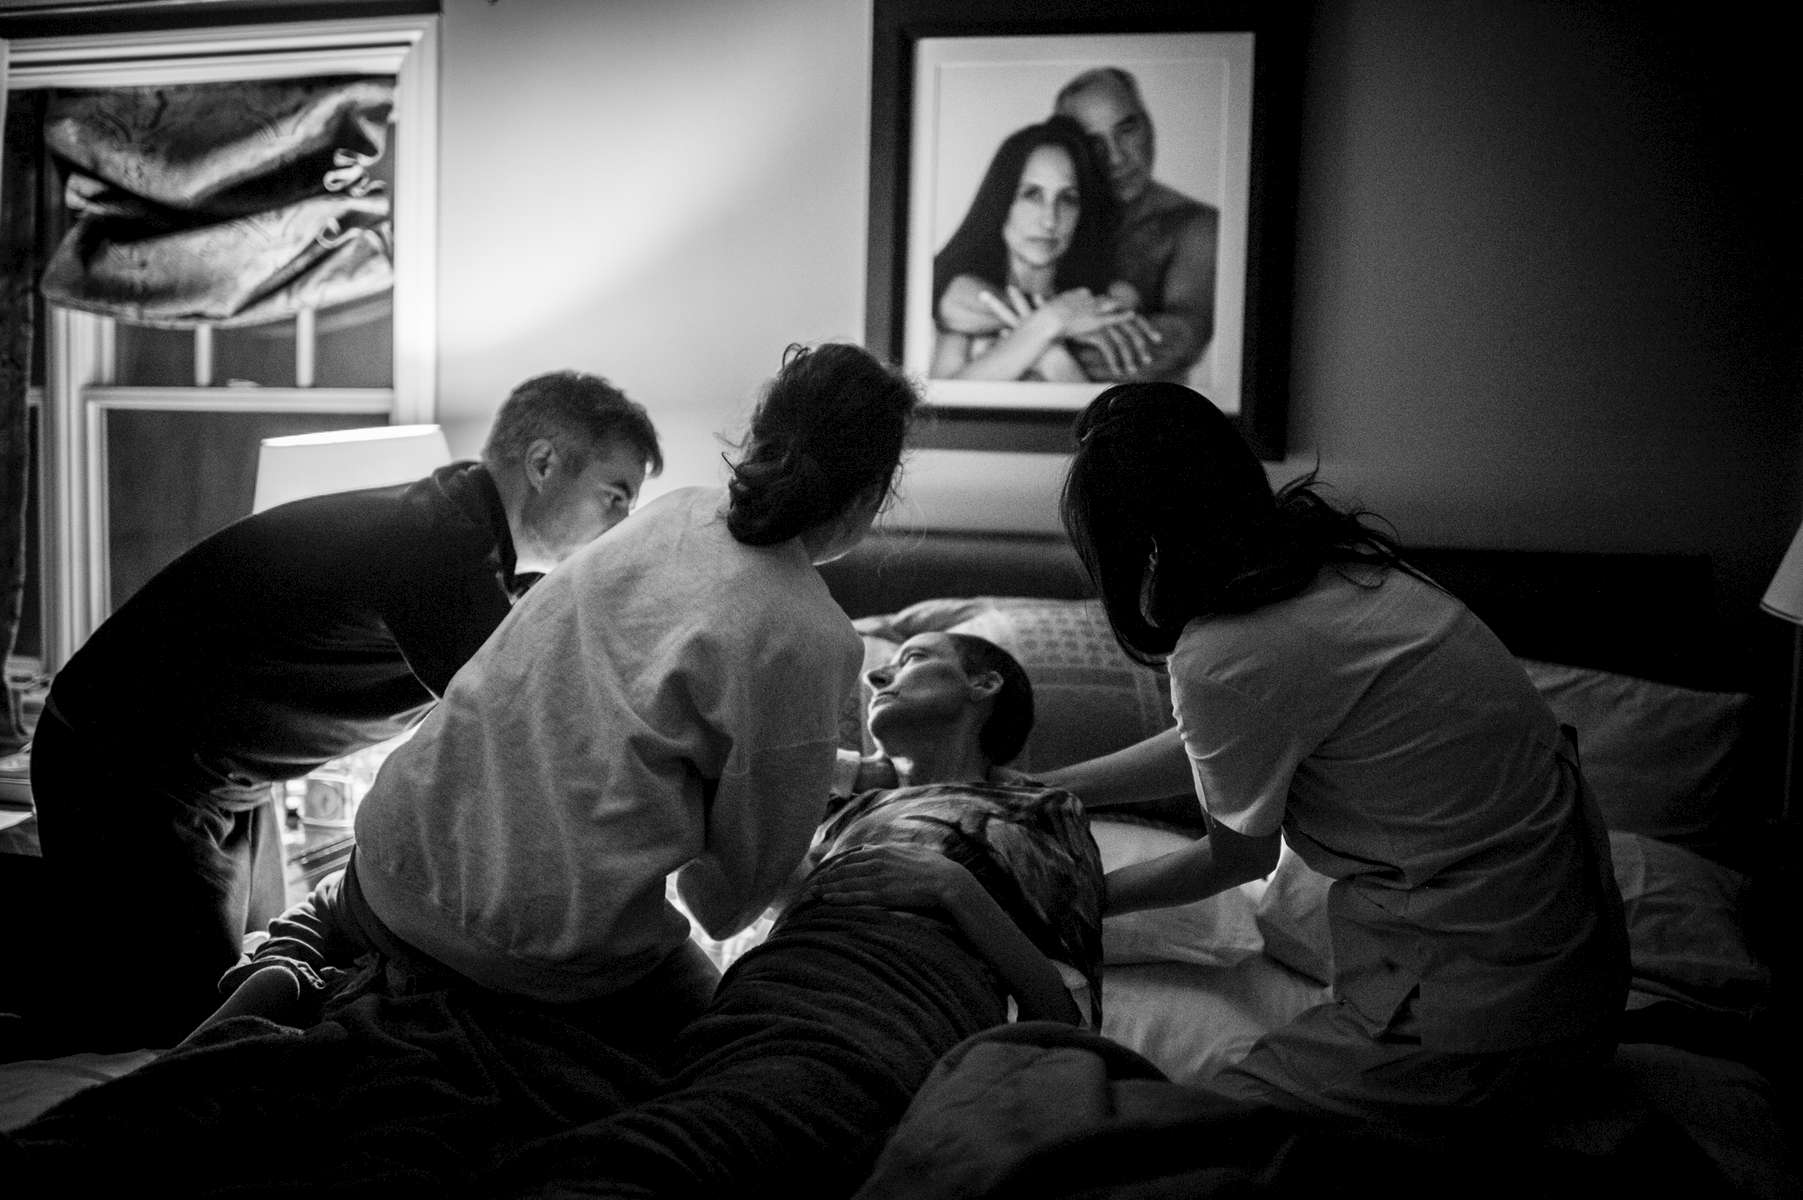 After changing her into clean clothing, Paul, her son-in-law, Jessica, her daughter, and Evalina, her caregiver, gently lay her back into her bed. Chappaqua, NY. December 2014.